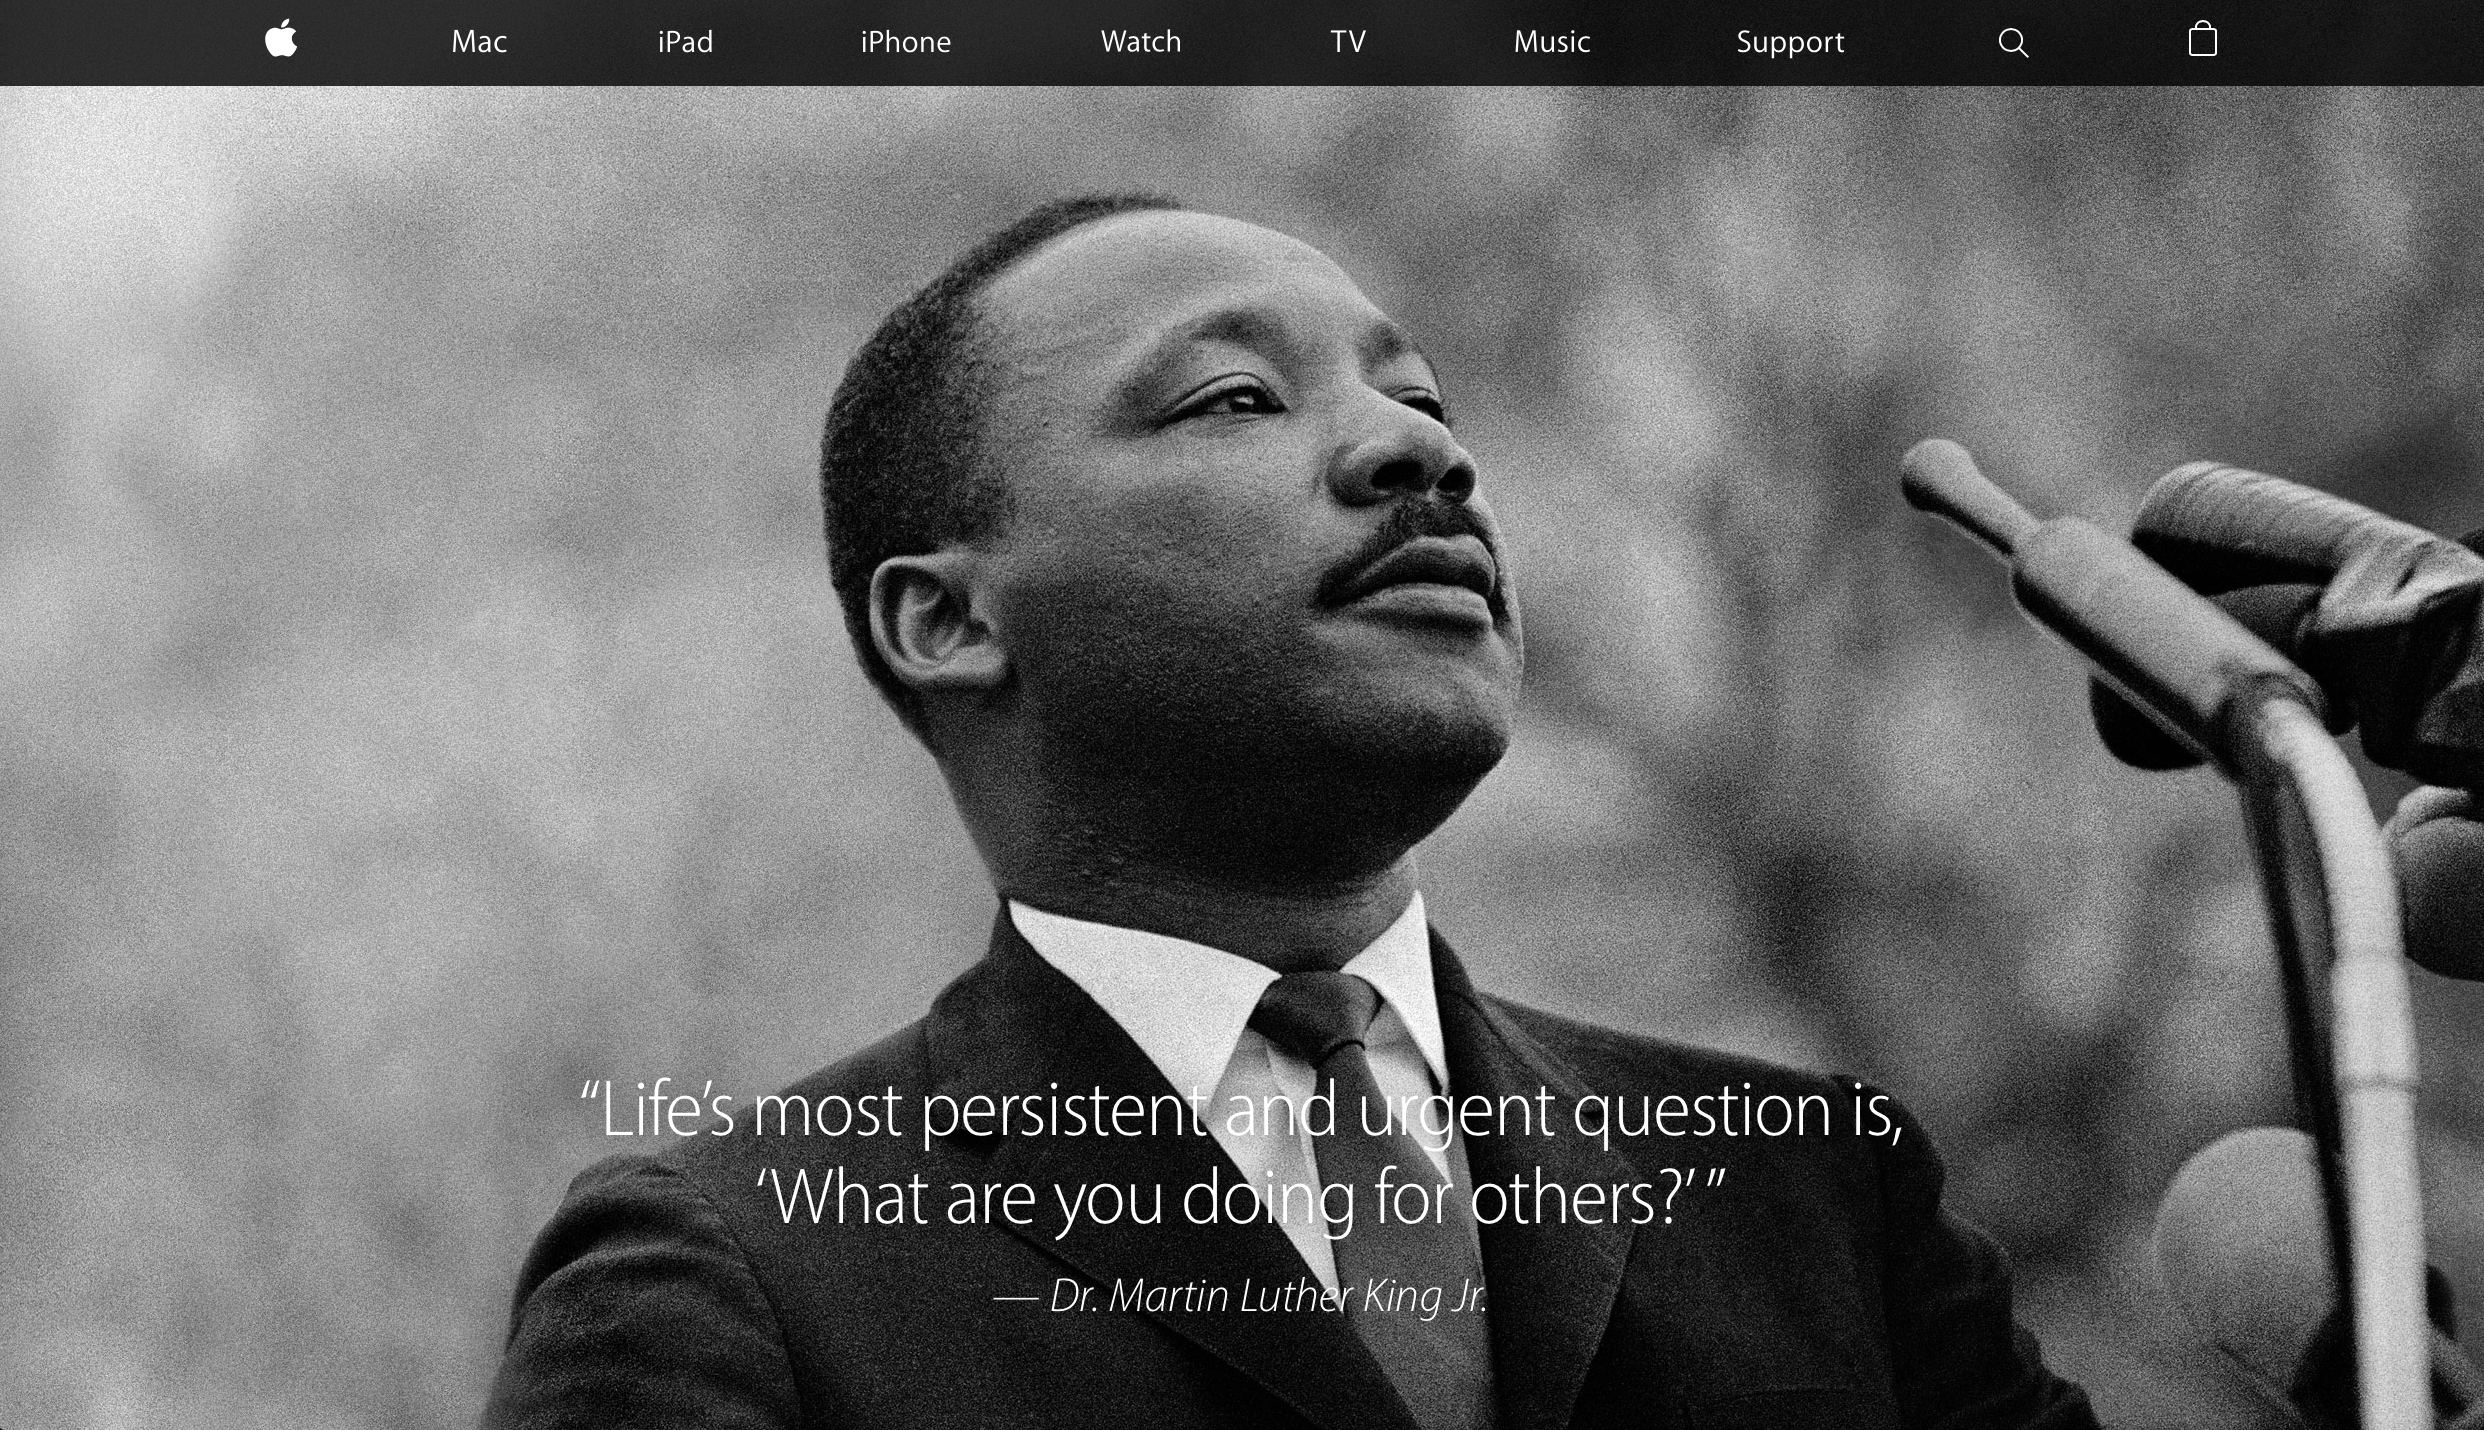 Apple's home page tribute honors Martin Luther King Jr.